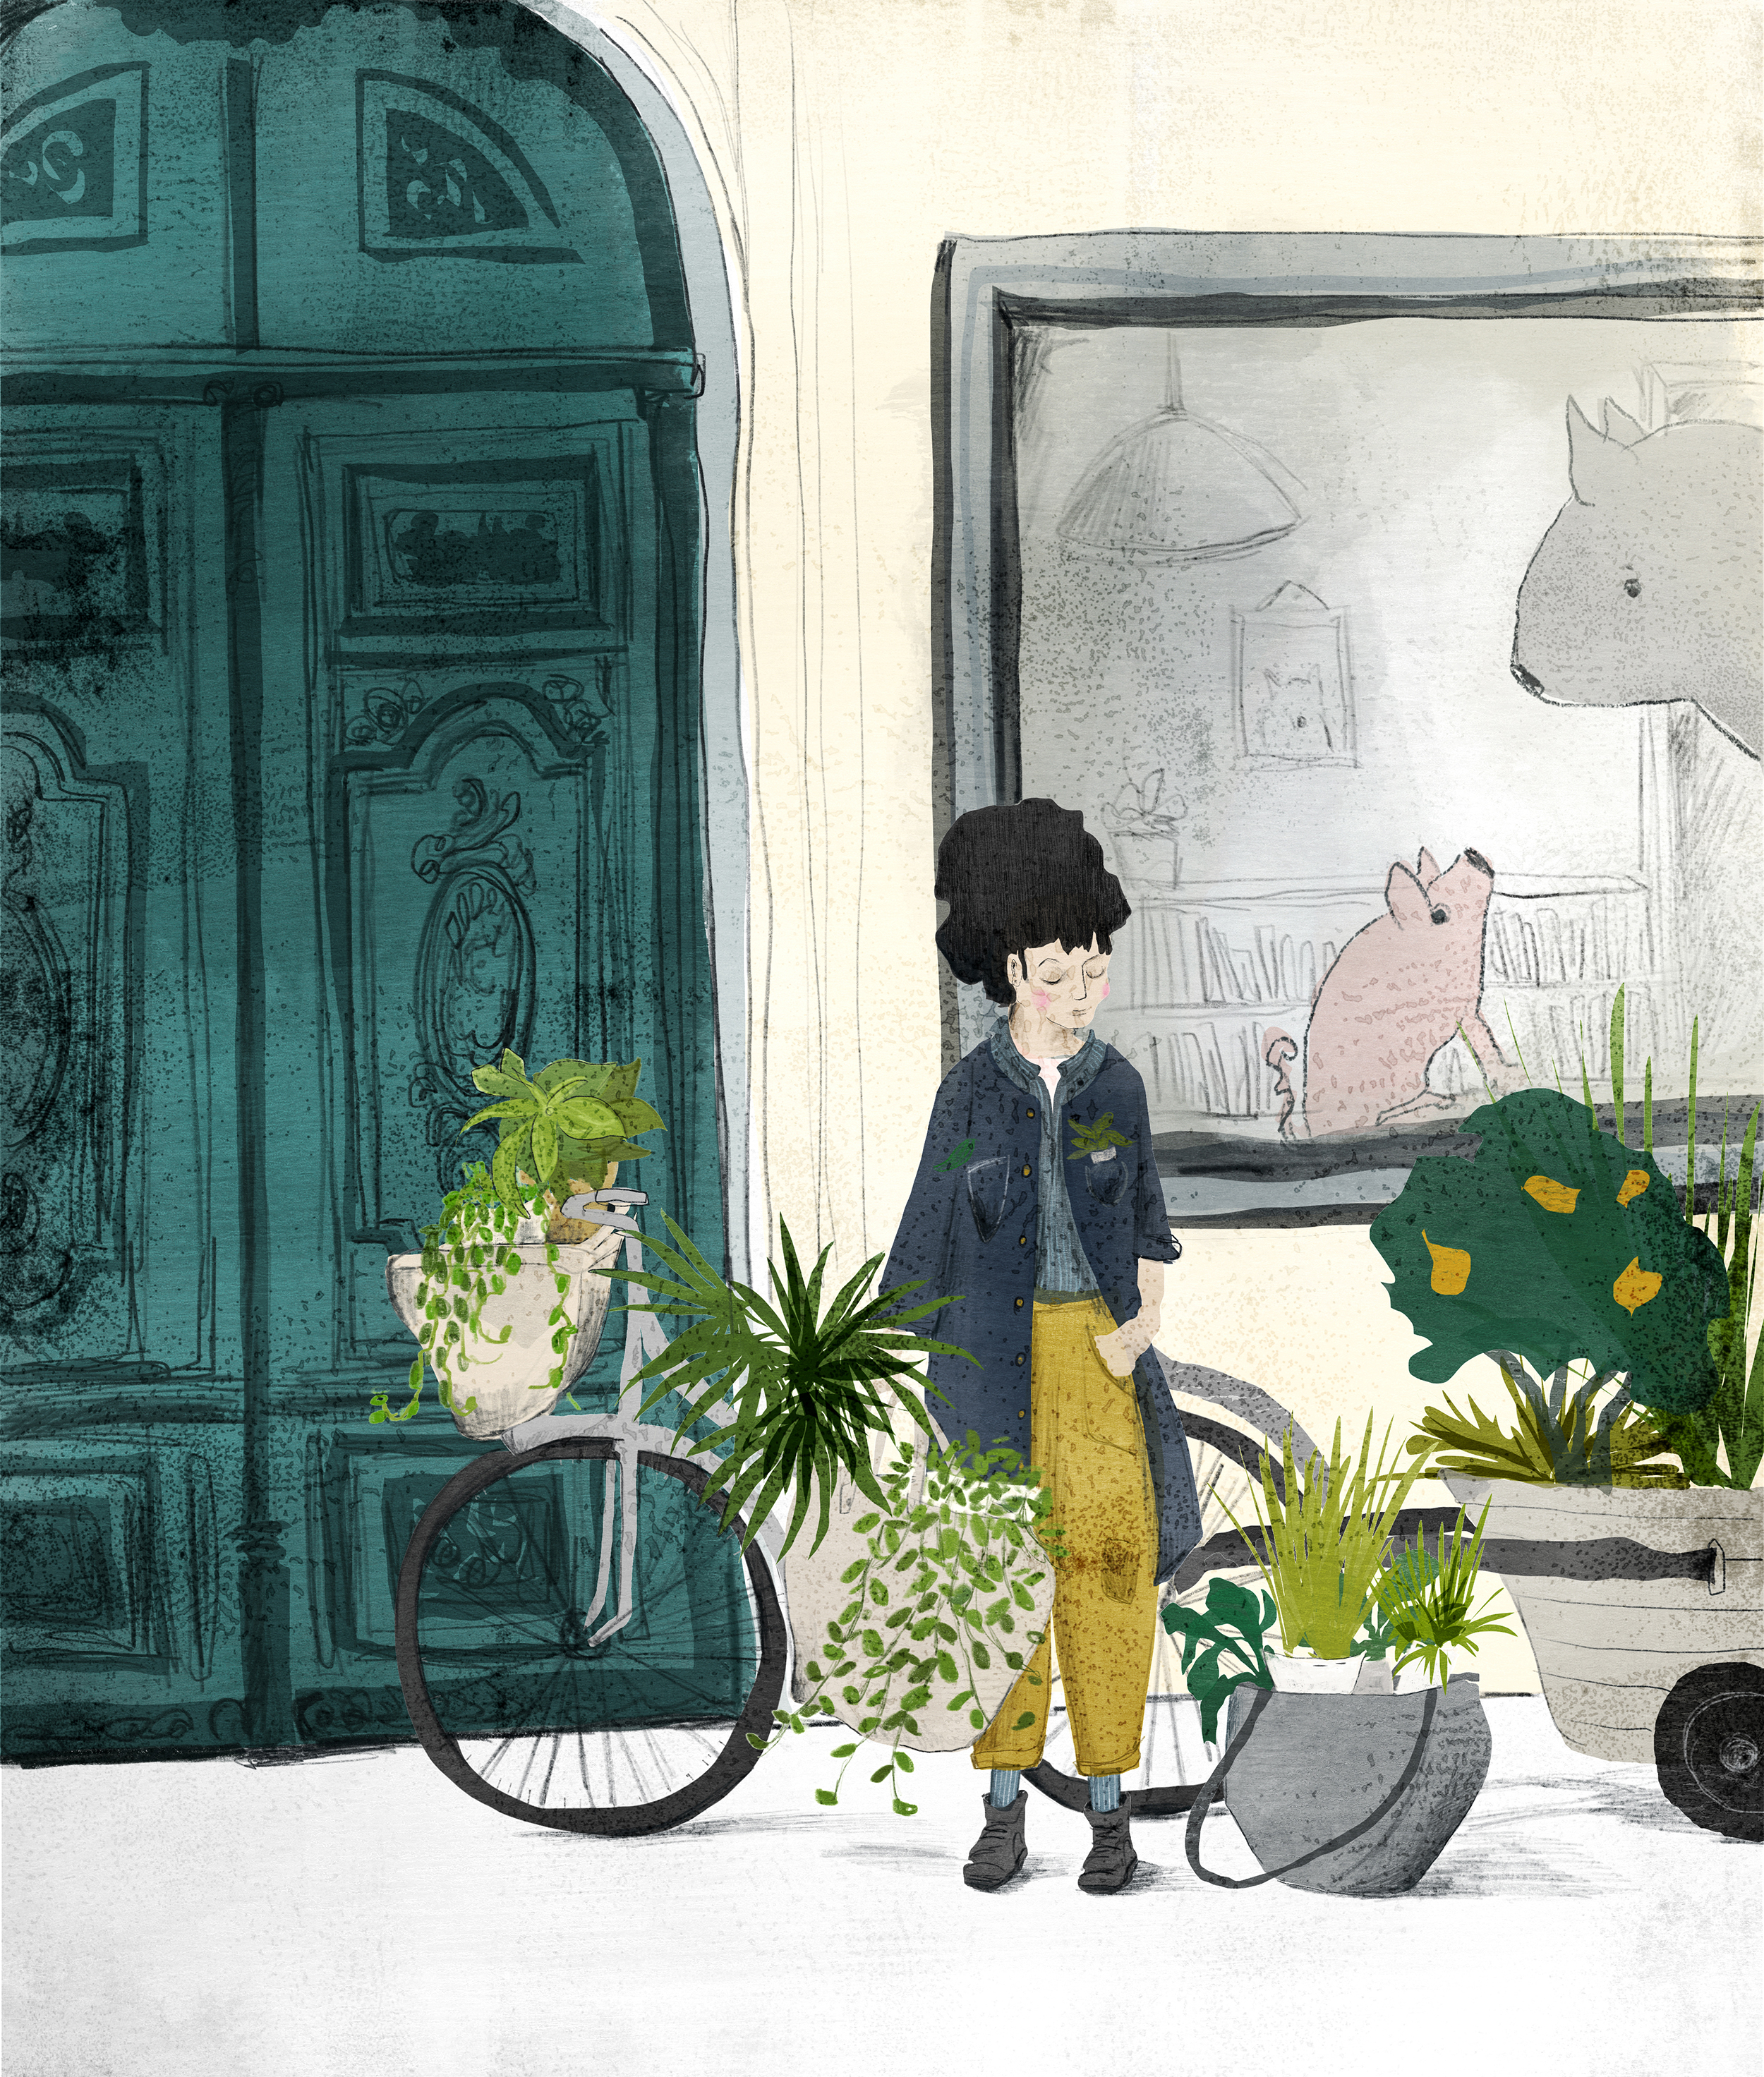 Shop on holidays - Thanks so much for visiting my shop. I'm off on a little adventure - drawing and working and a little holidaying in the UK until October 10. My shop will open again sometime then… stay tuned! Sign up below to be notified when I reopen.